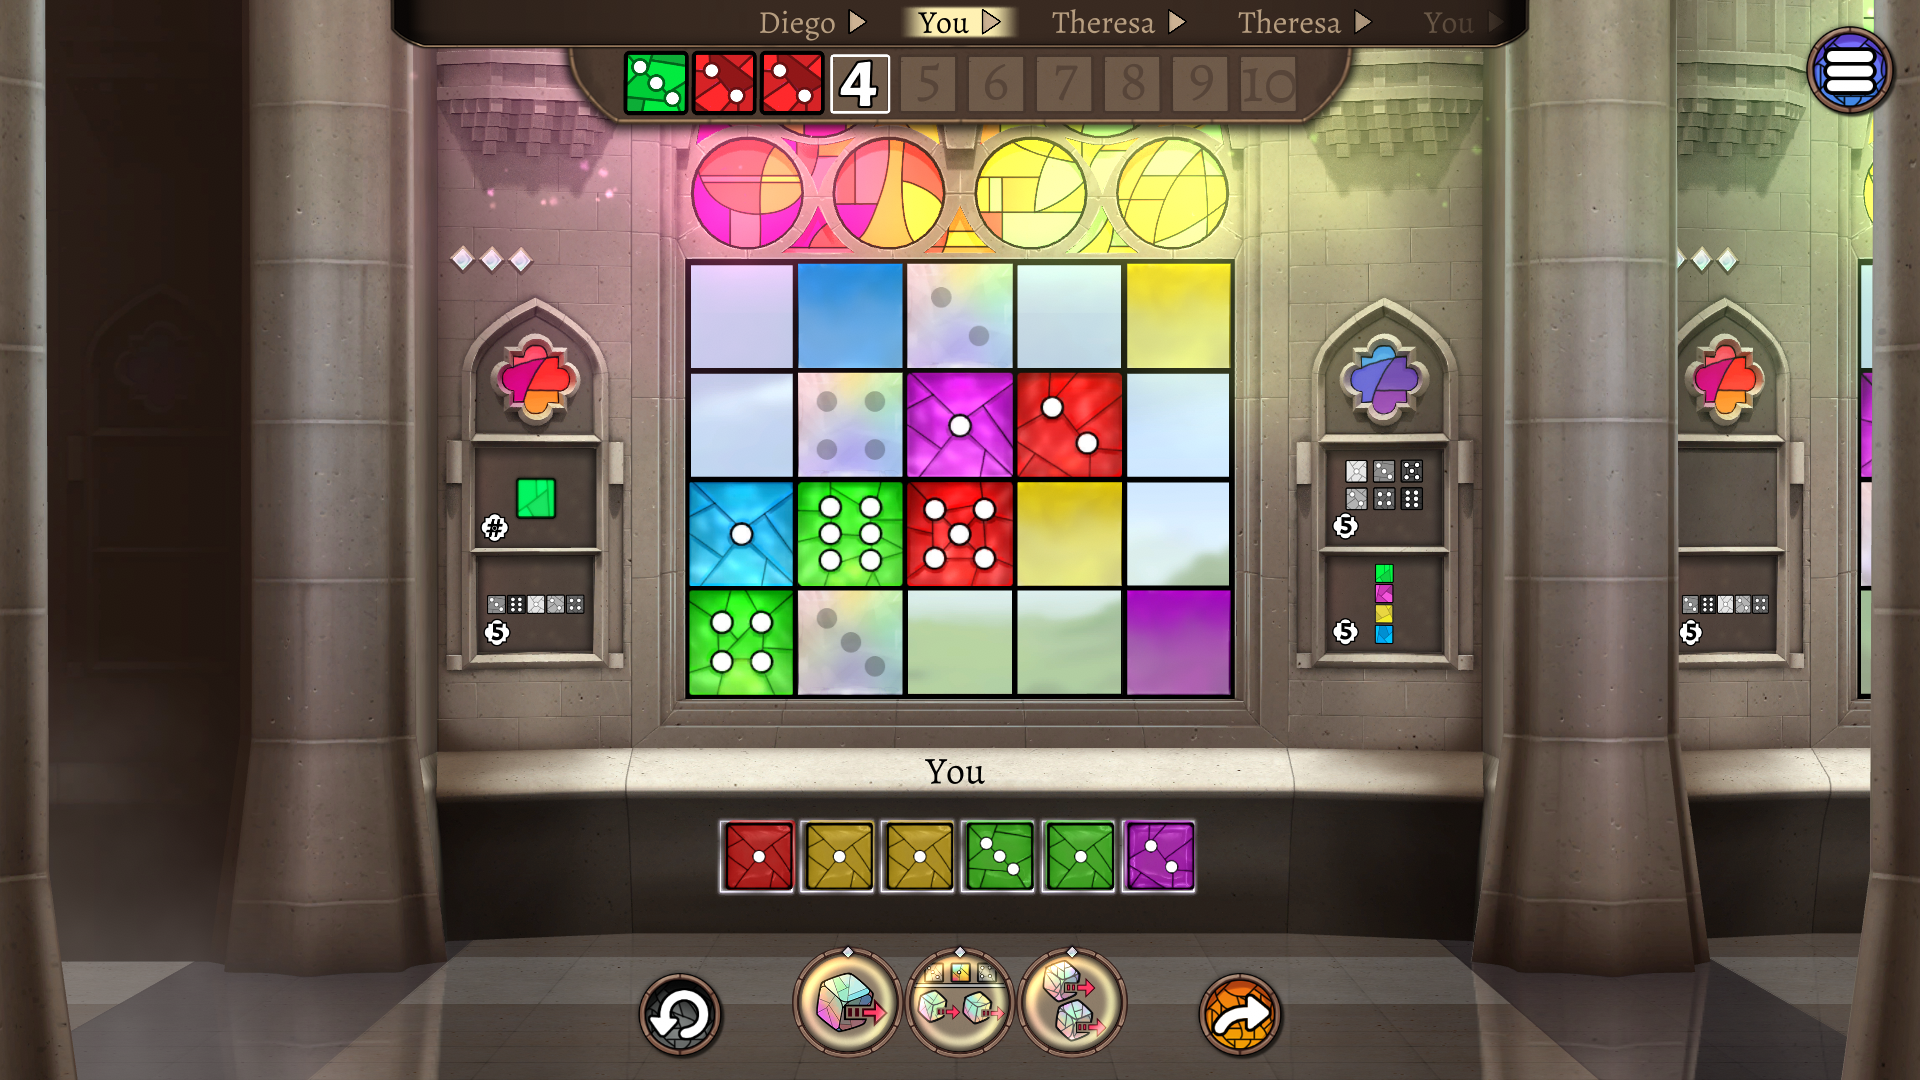 Draft dice to make the most beautiful stained glass window for your cathedral.